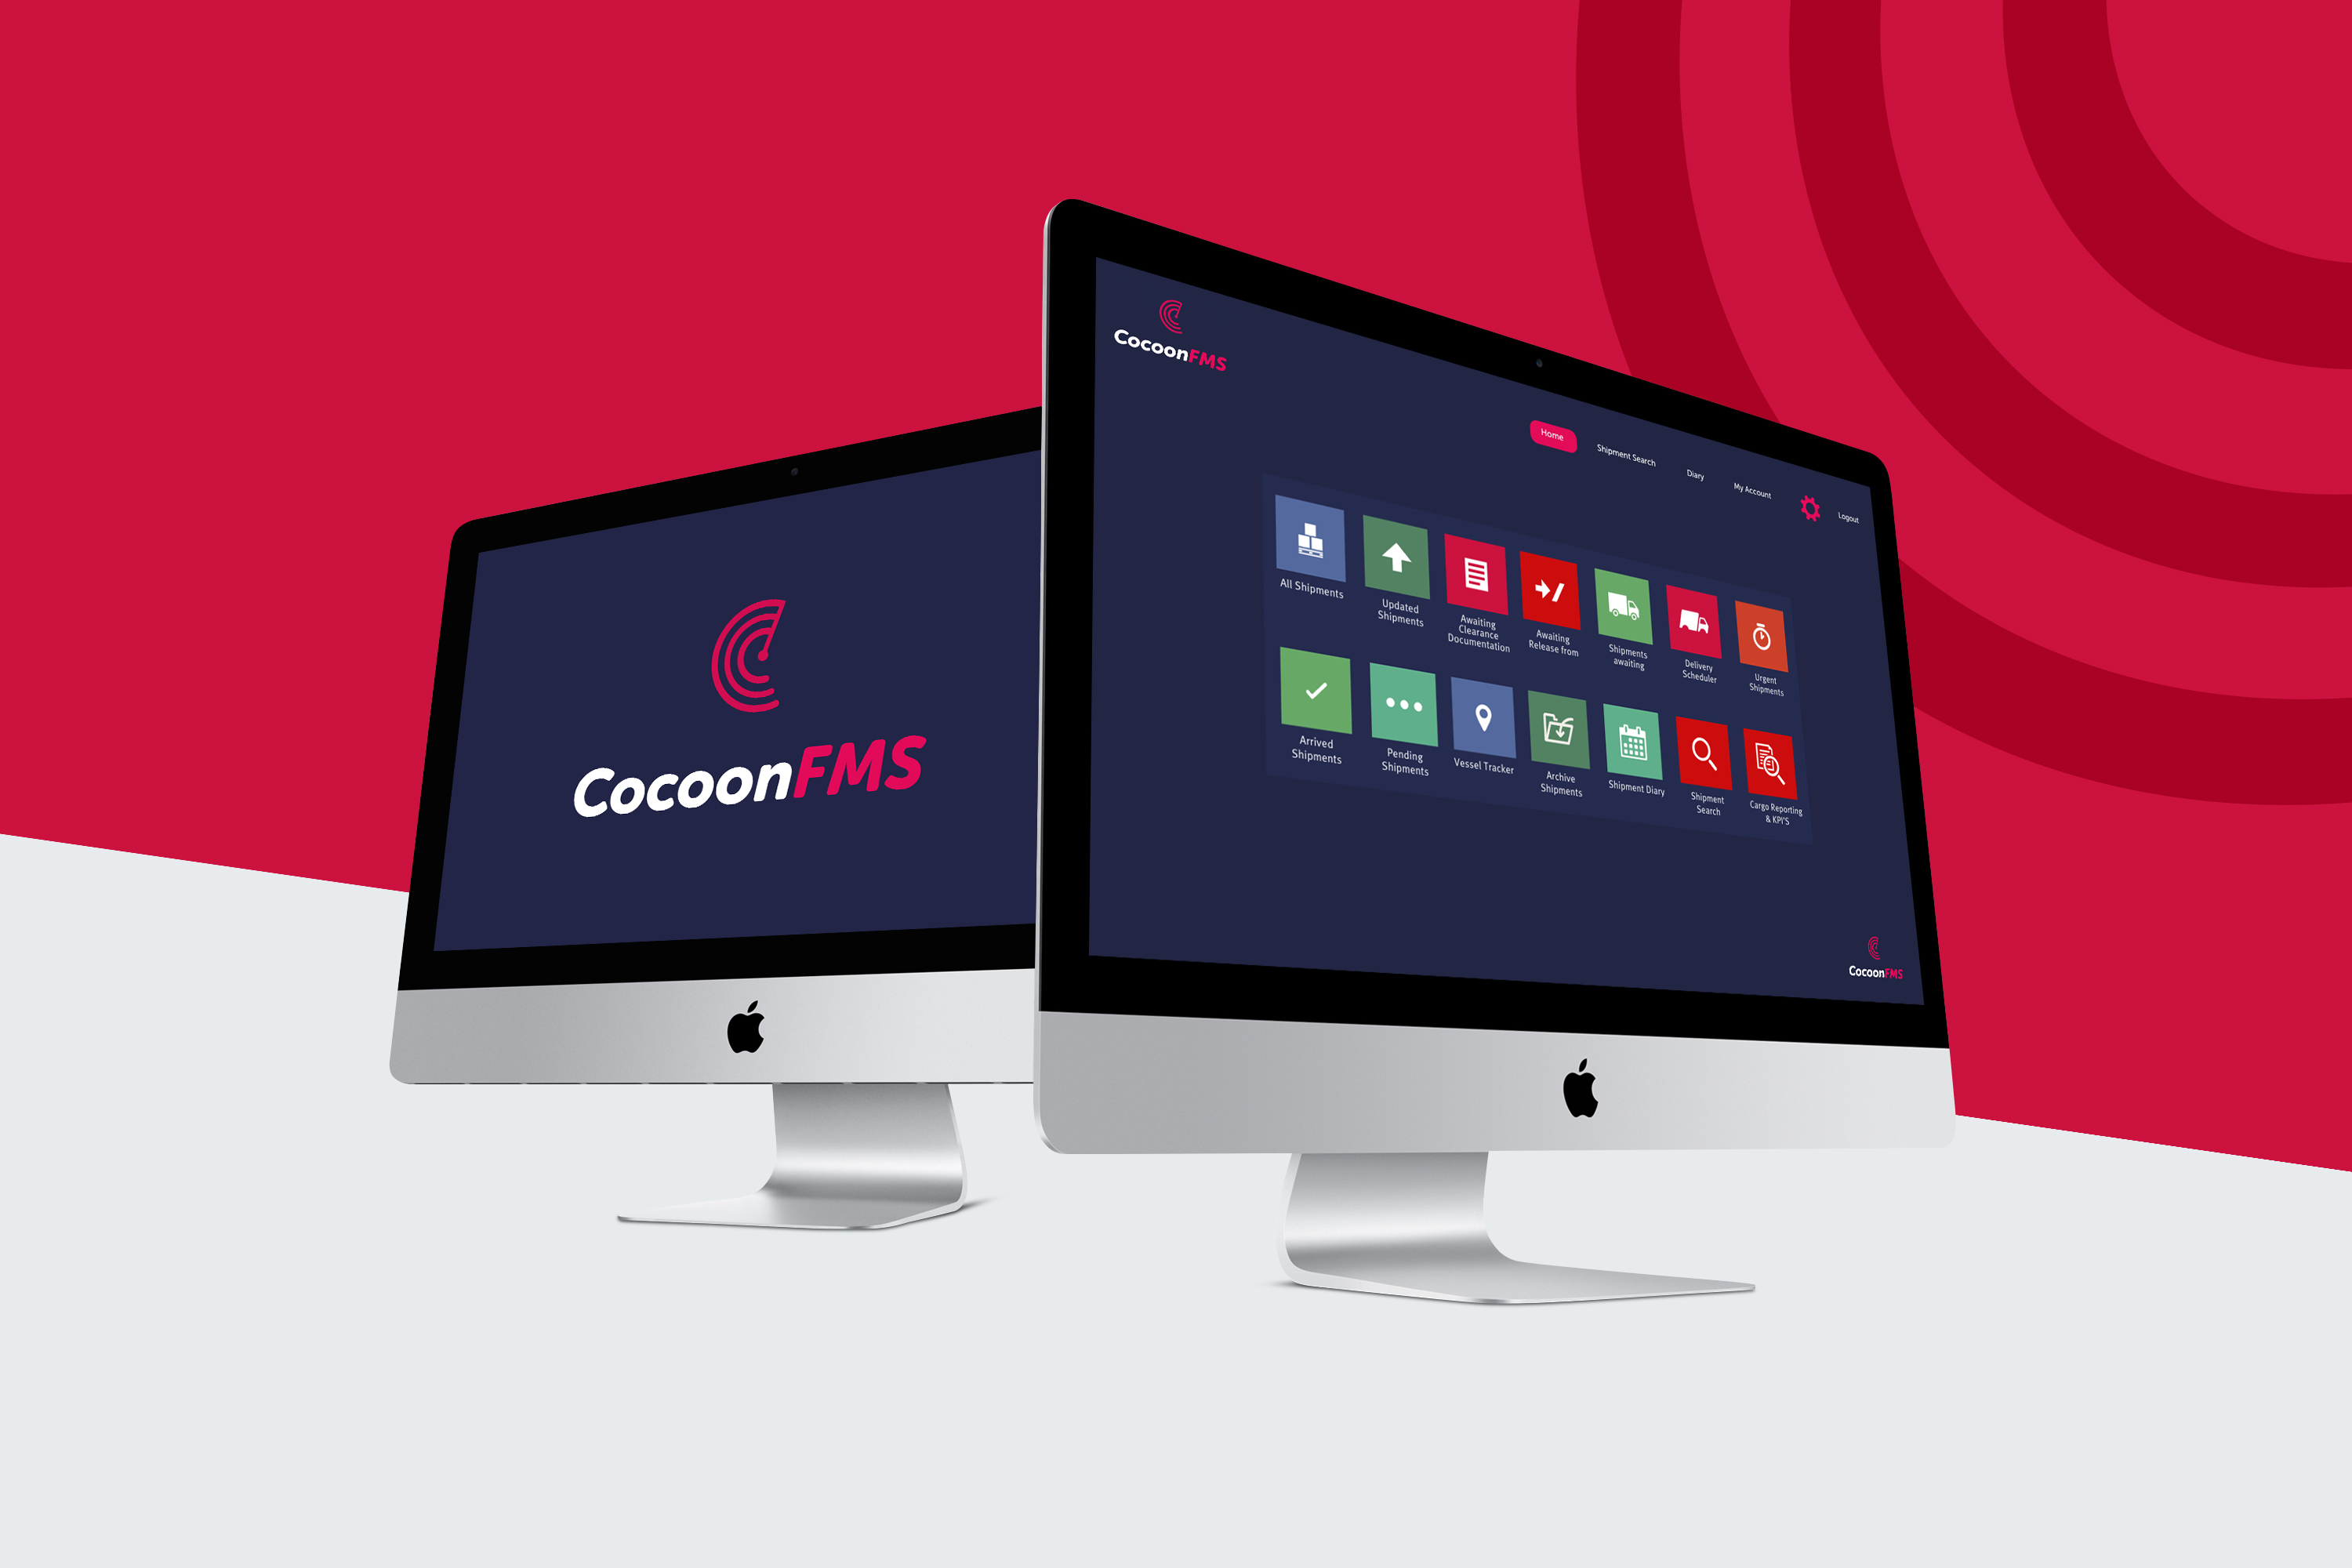 FCL Global Logistics choose CocoonFMS for their online visibility